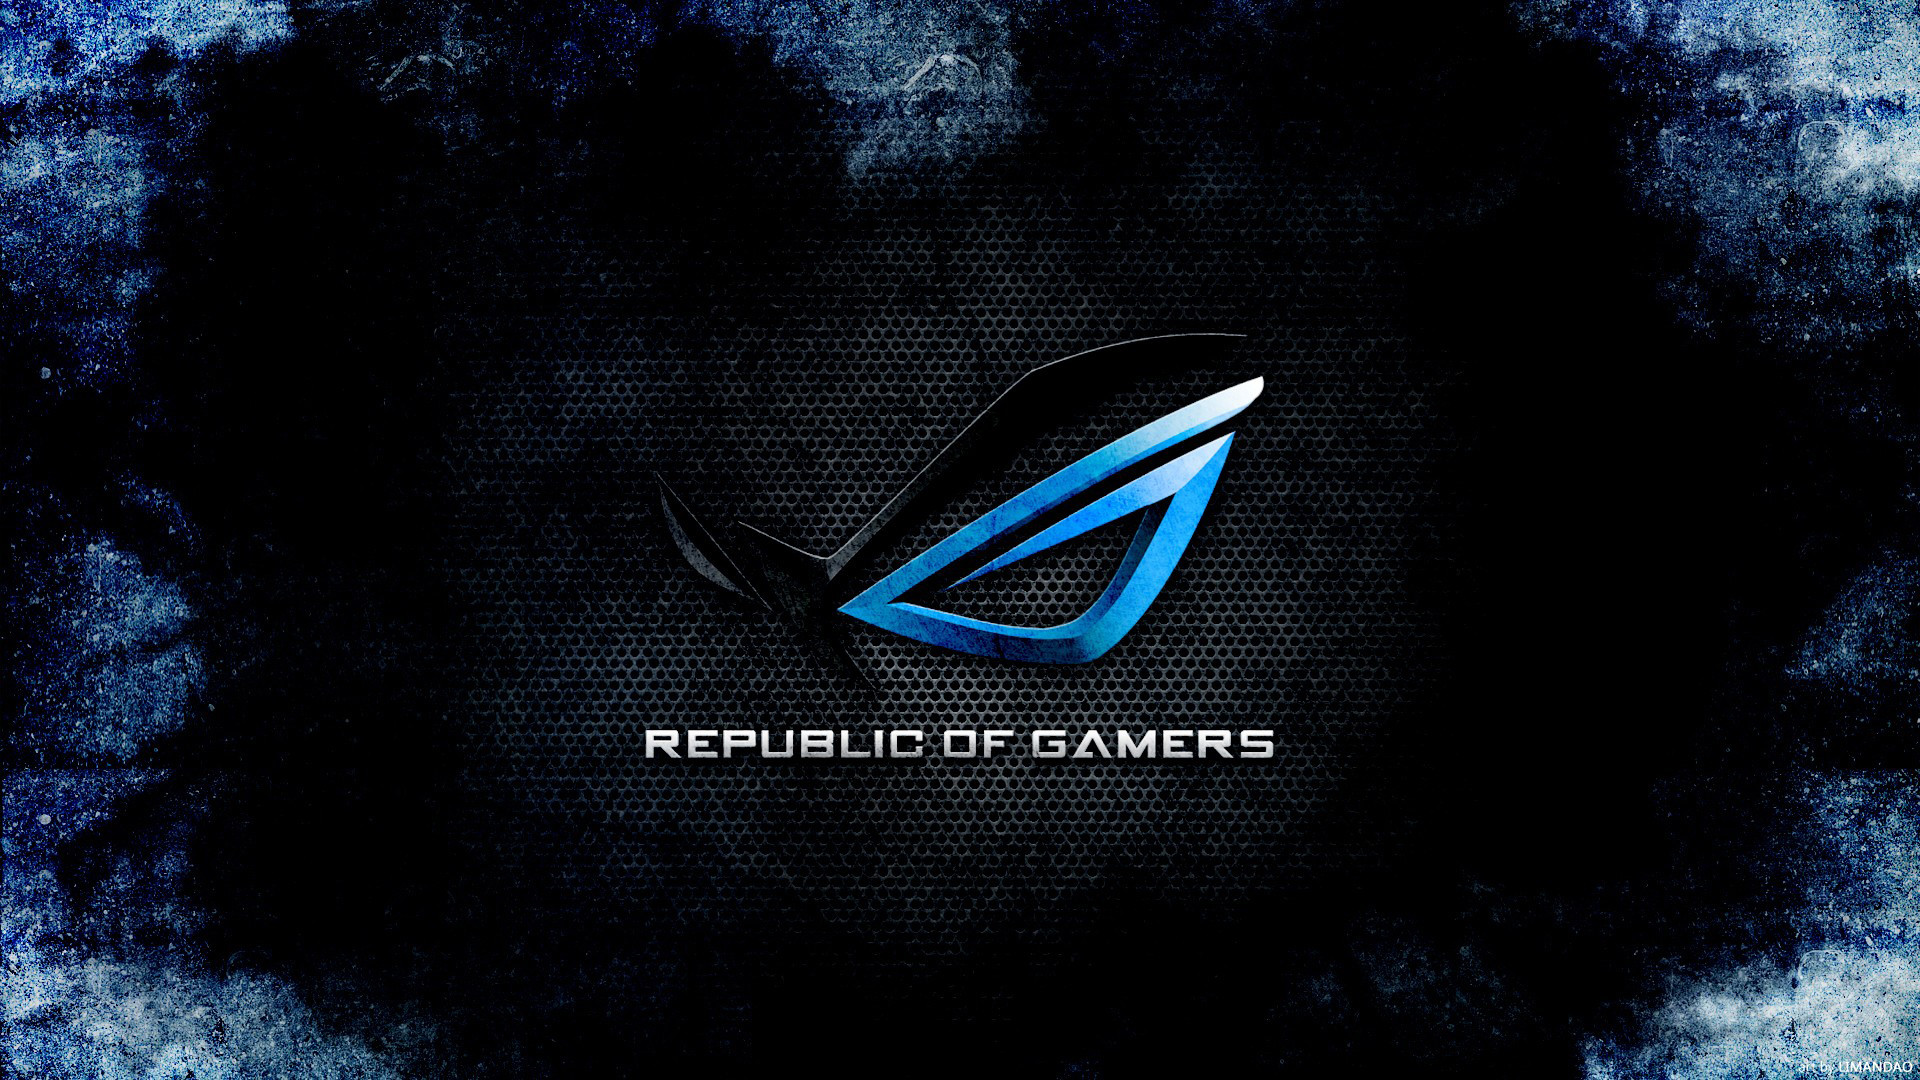 Space Wallpaper Full Hd Asus Rog Wallpaper 1920x1080 89 Images